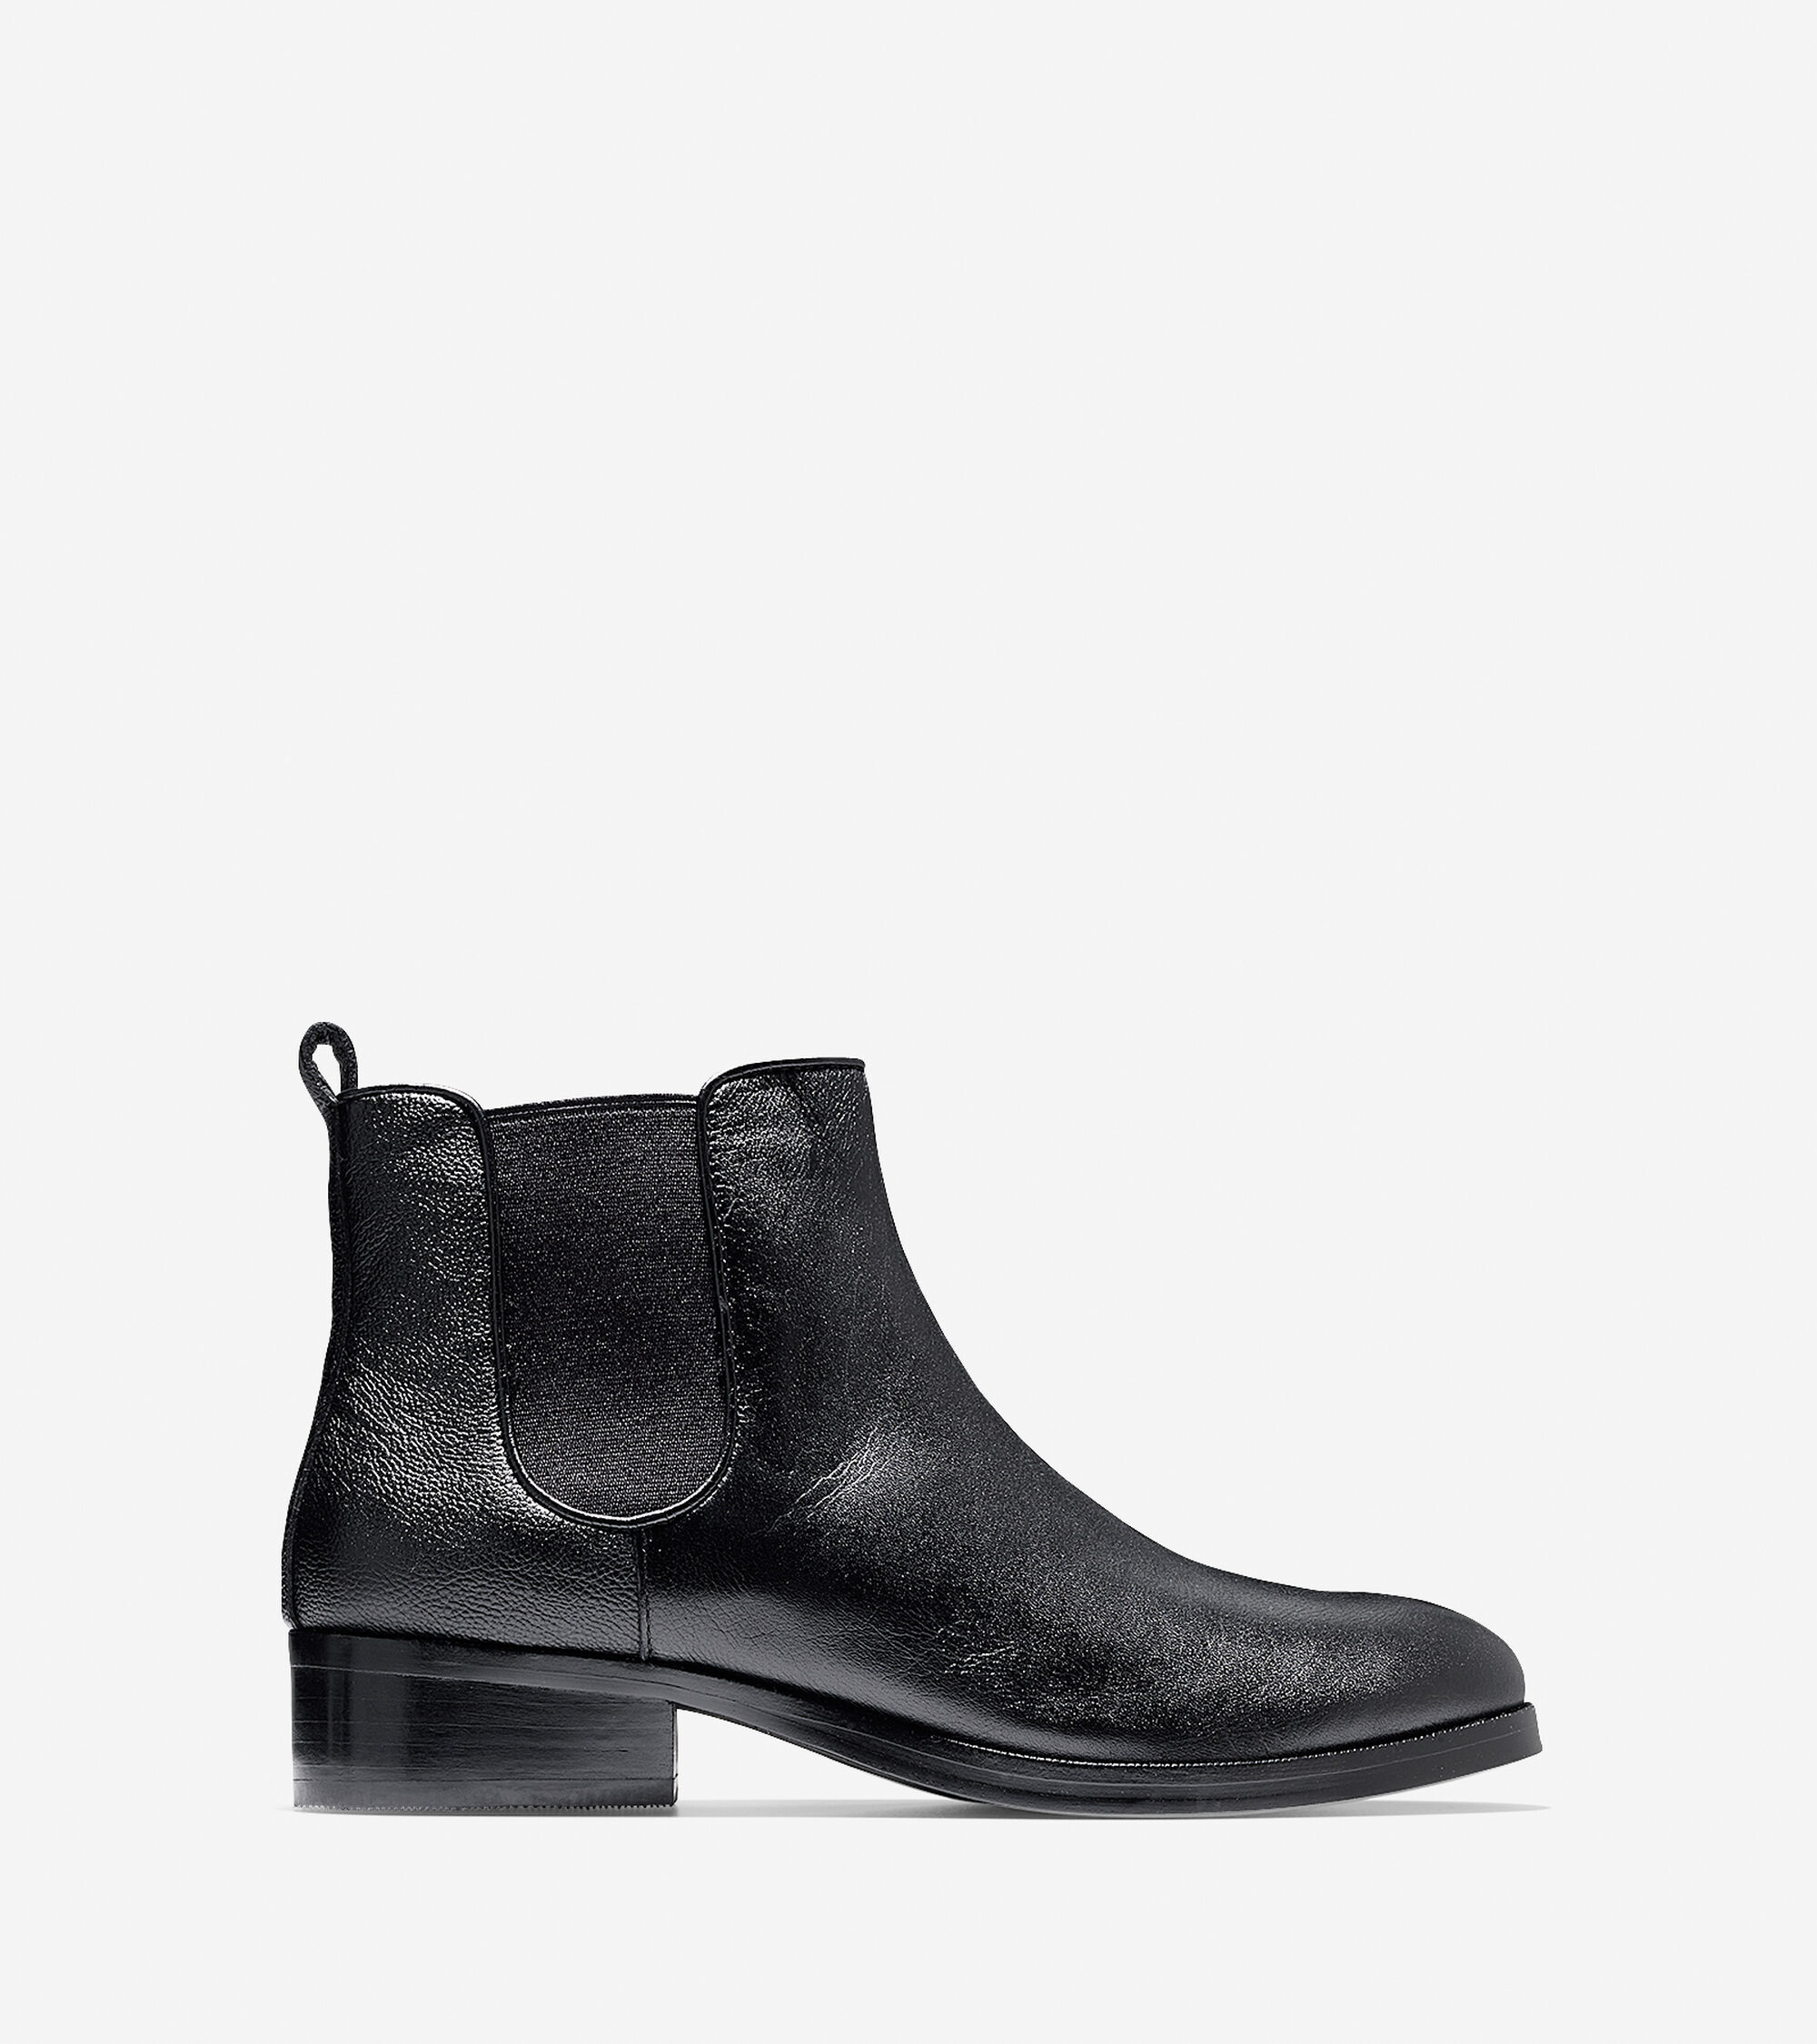 Cole Haan Womens Shoes Price